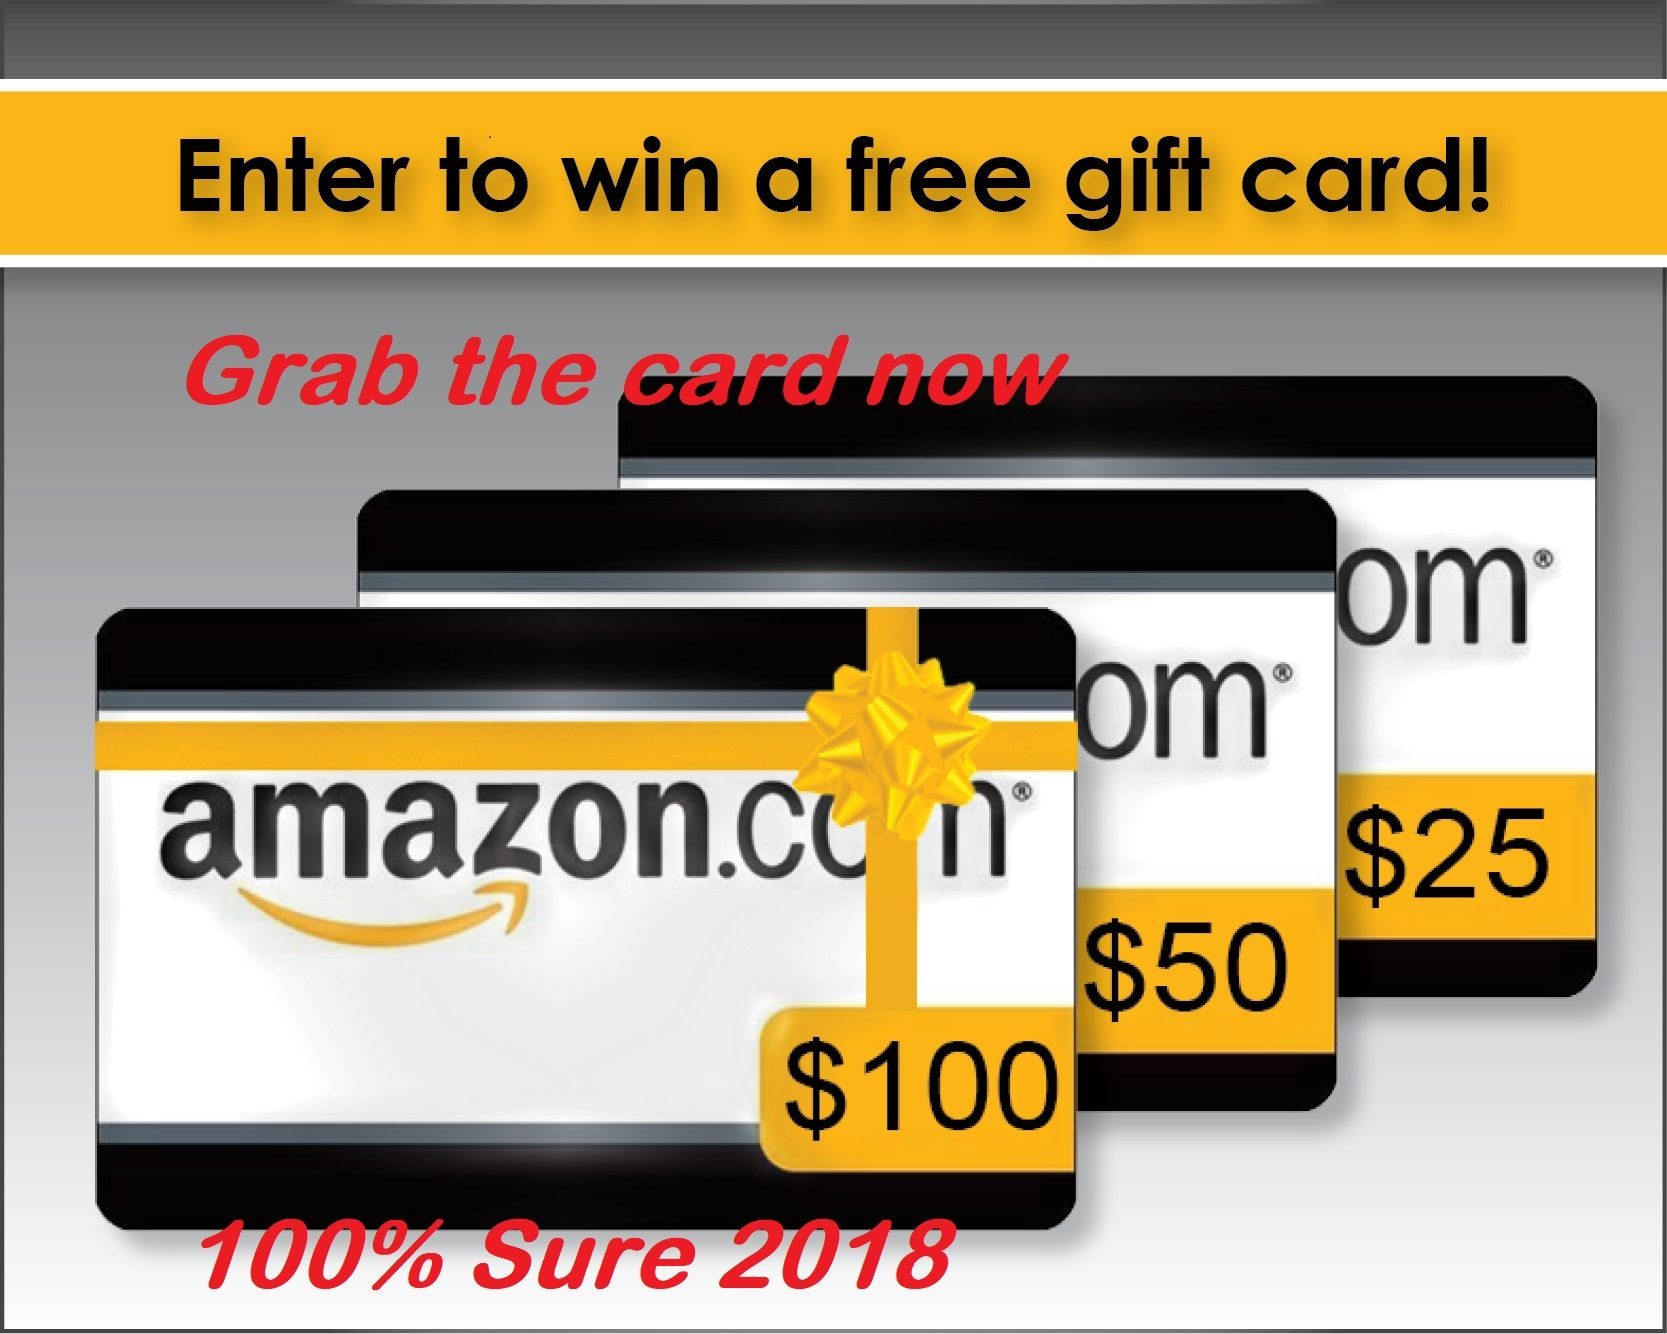 Free Gift Card Get All Xbox Roblox Paypal Ebay Amazon Google